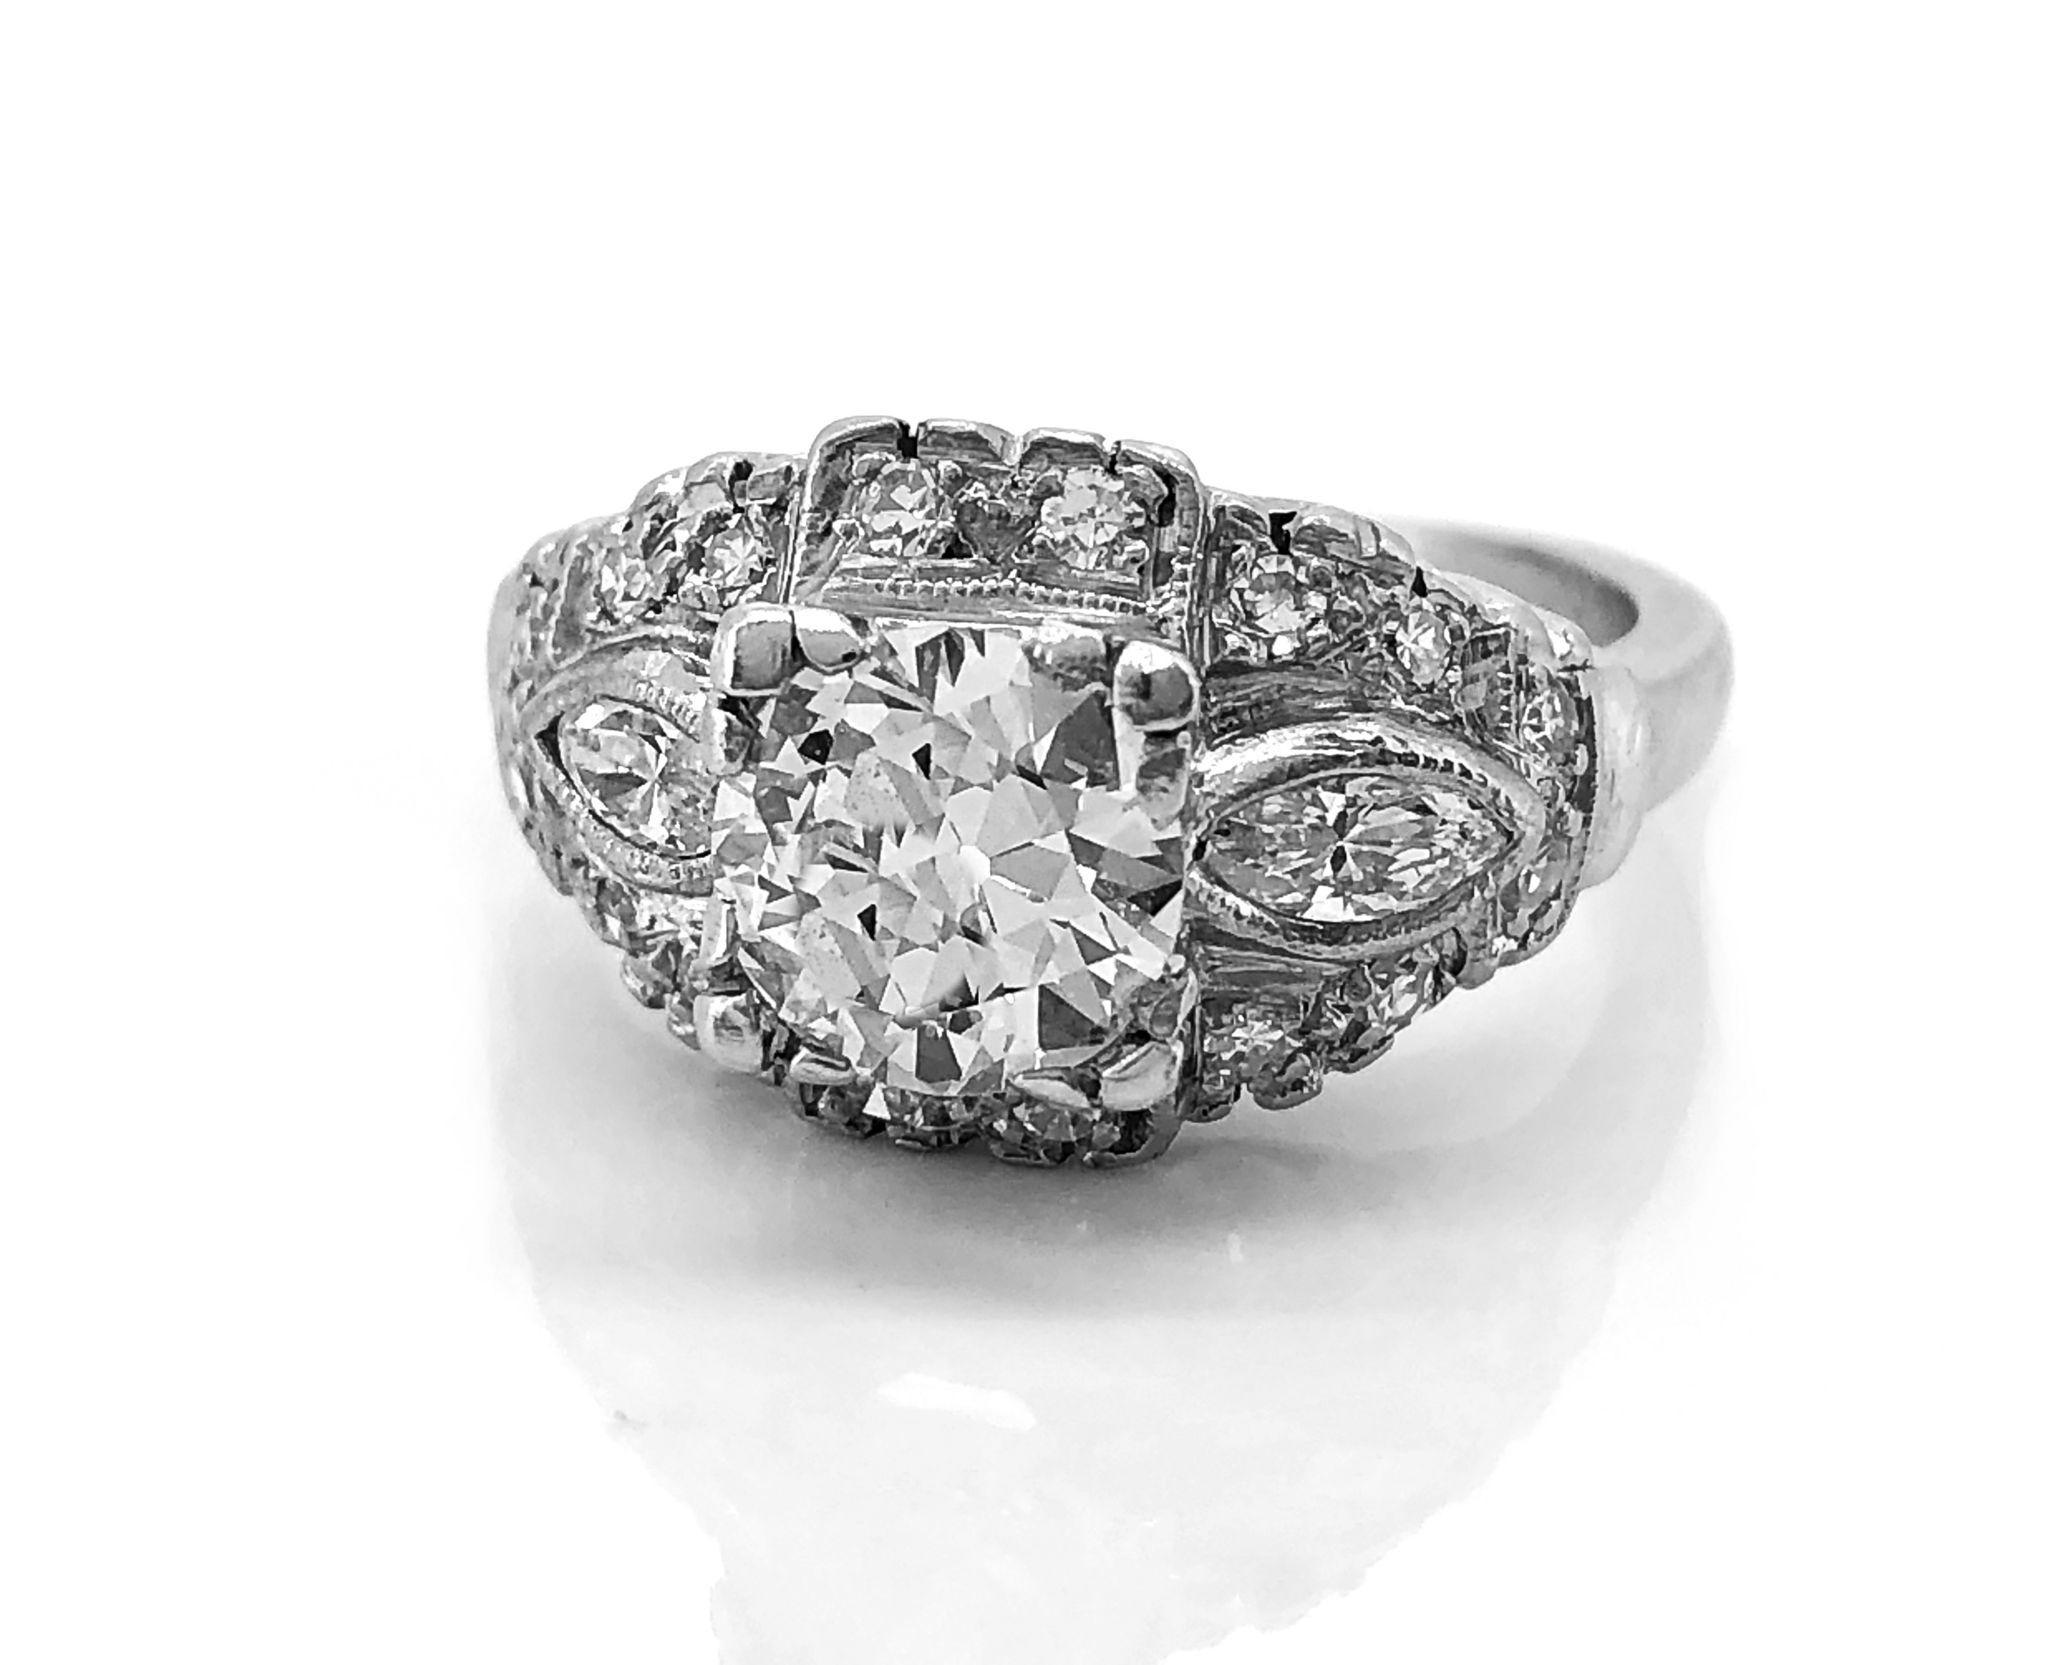 Vintage Engagement Ring .90ct. Diamond & Platinum Art Deco - J35549